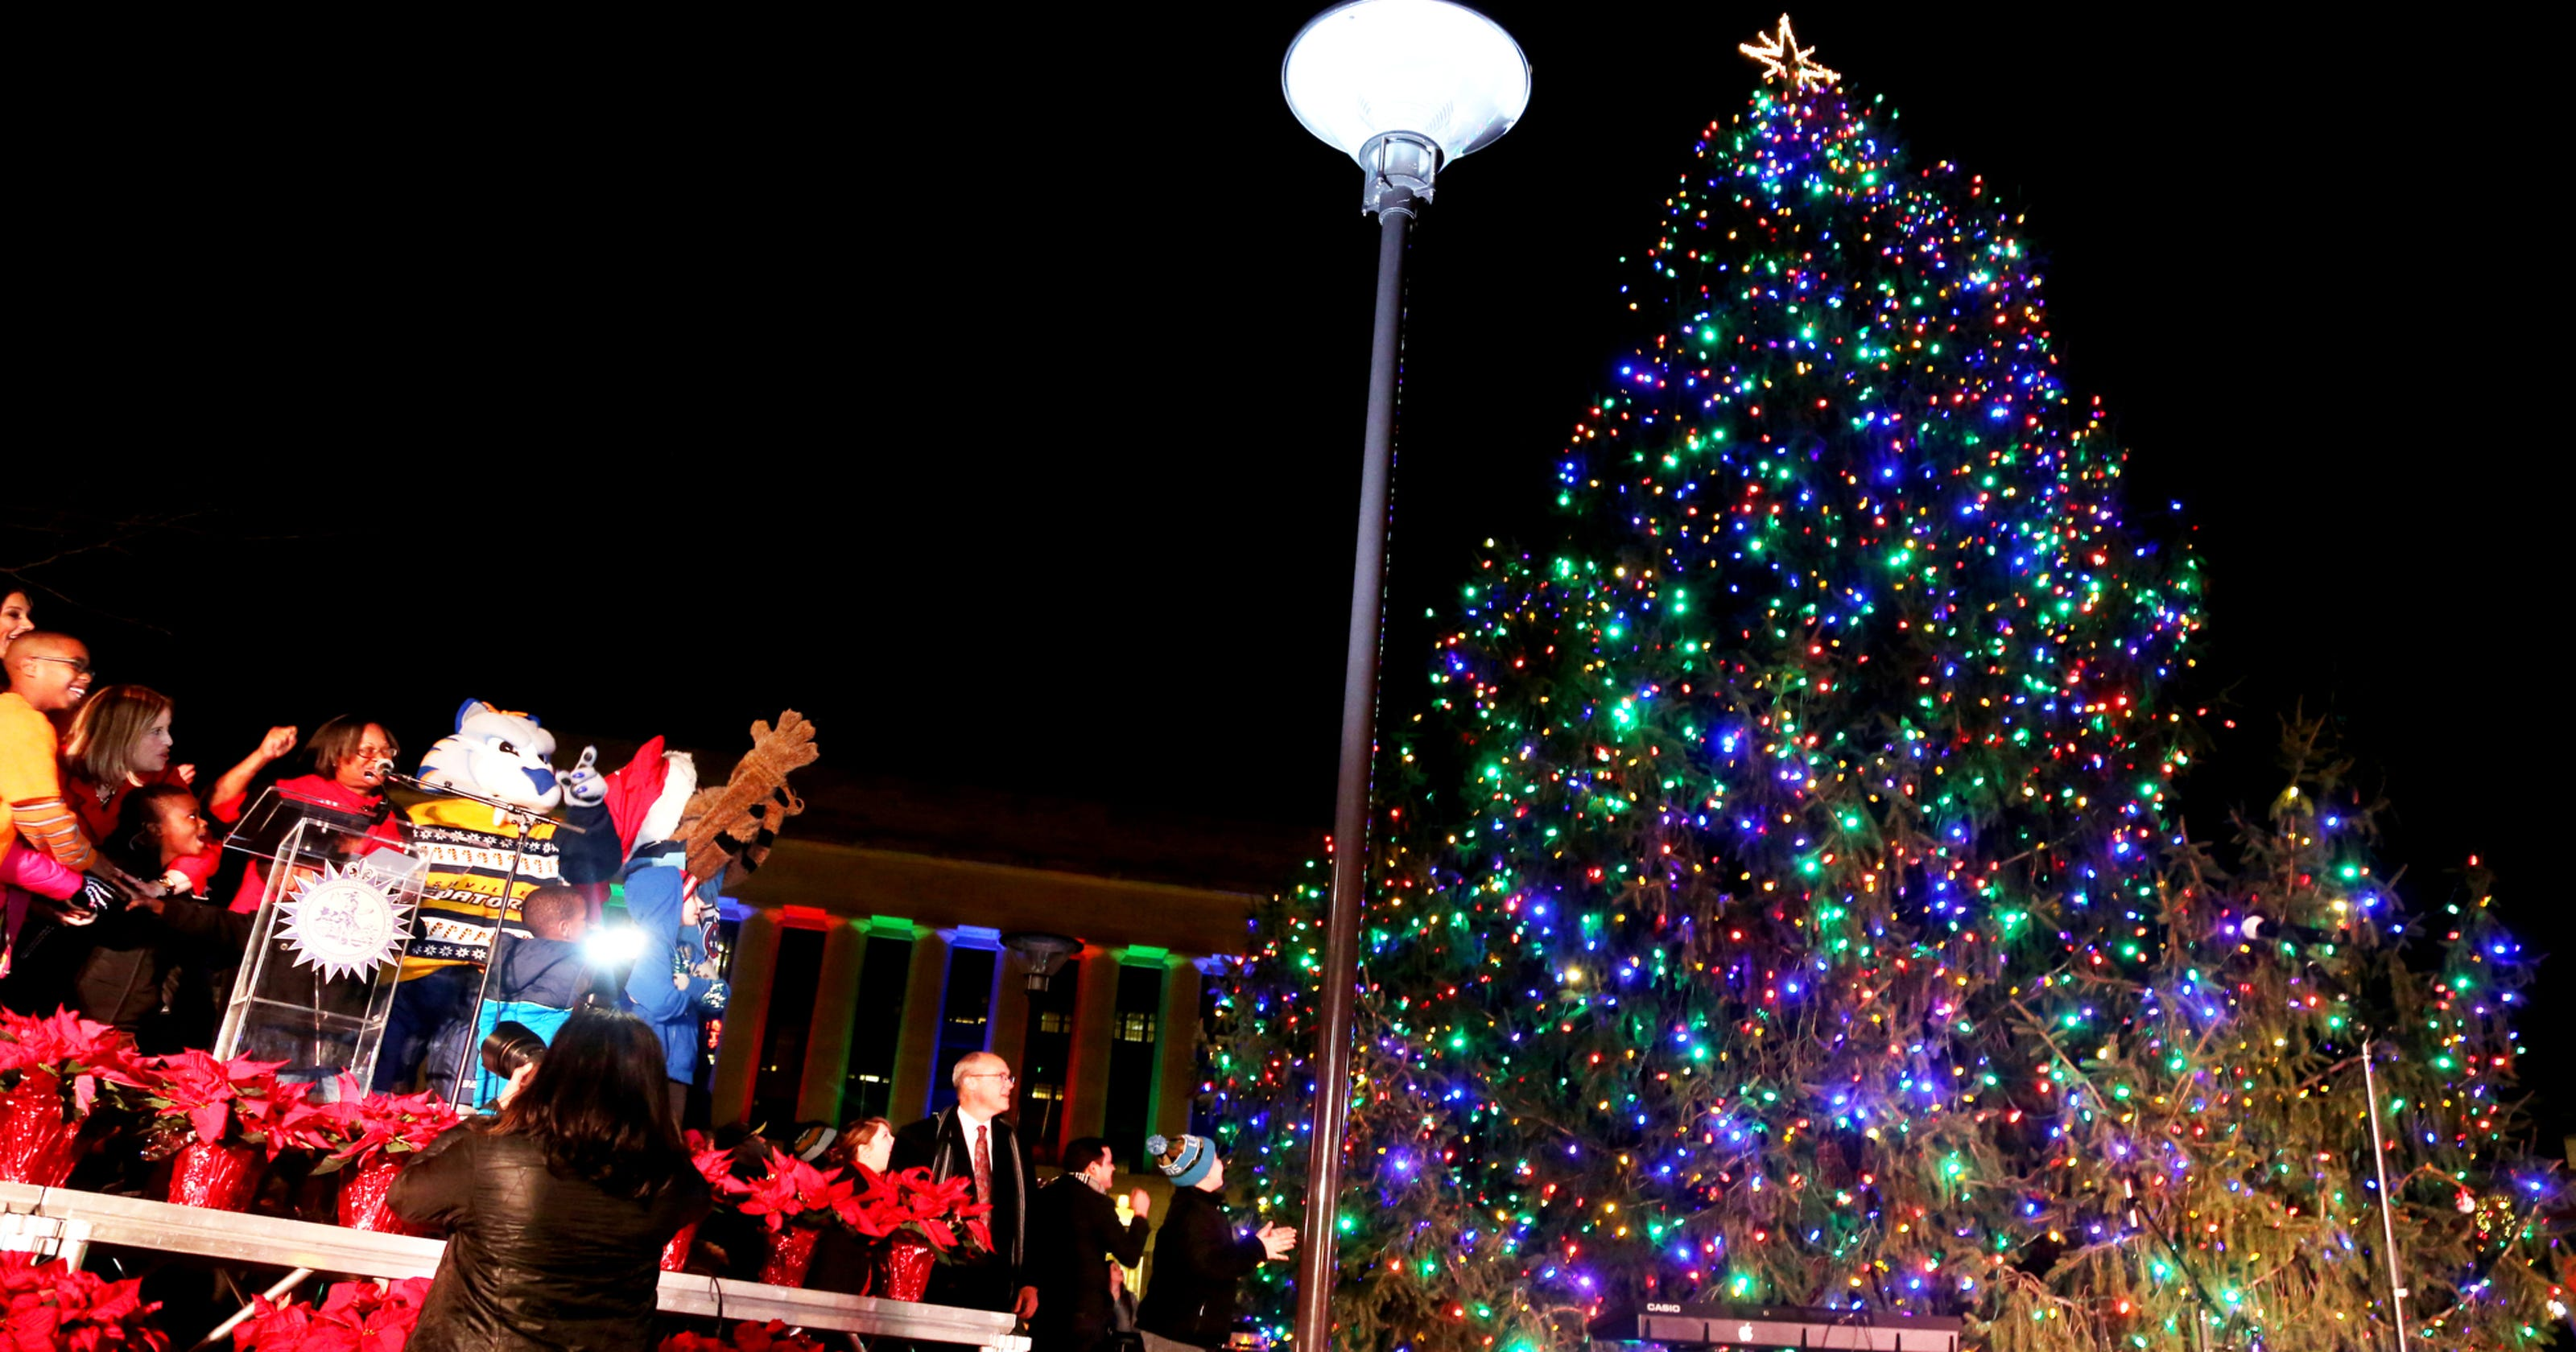 ms cheaps guide to the holidays in nashville